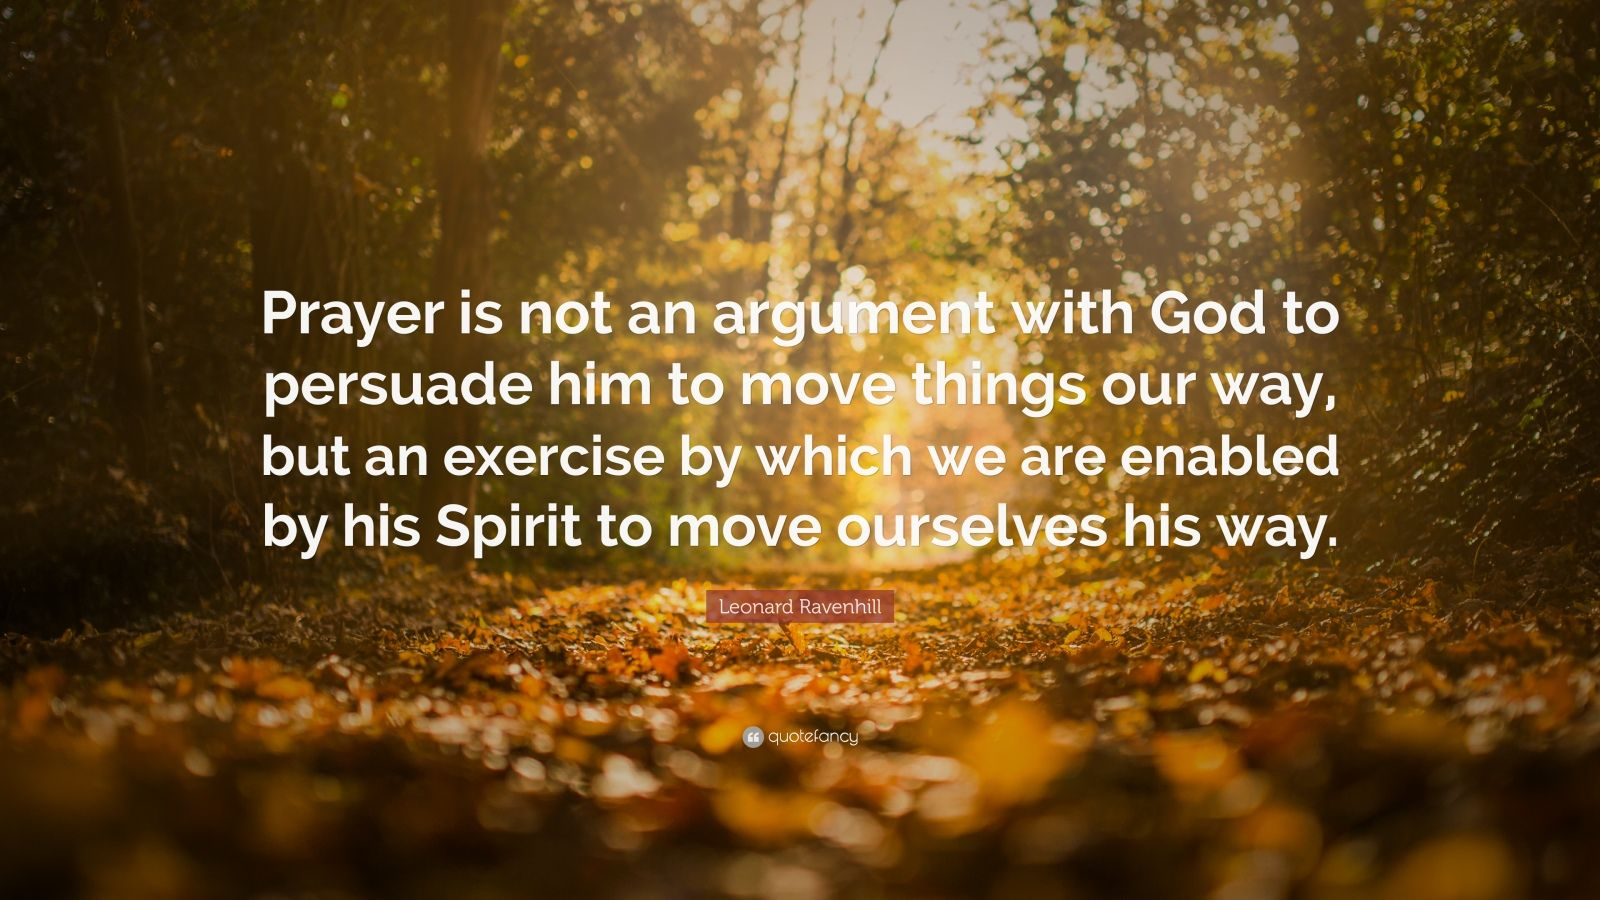 Nick Vujicic Quotes Wallpaper Leonard Ravenhill Quote Prayer Is Not An Argument With